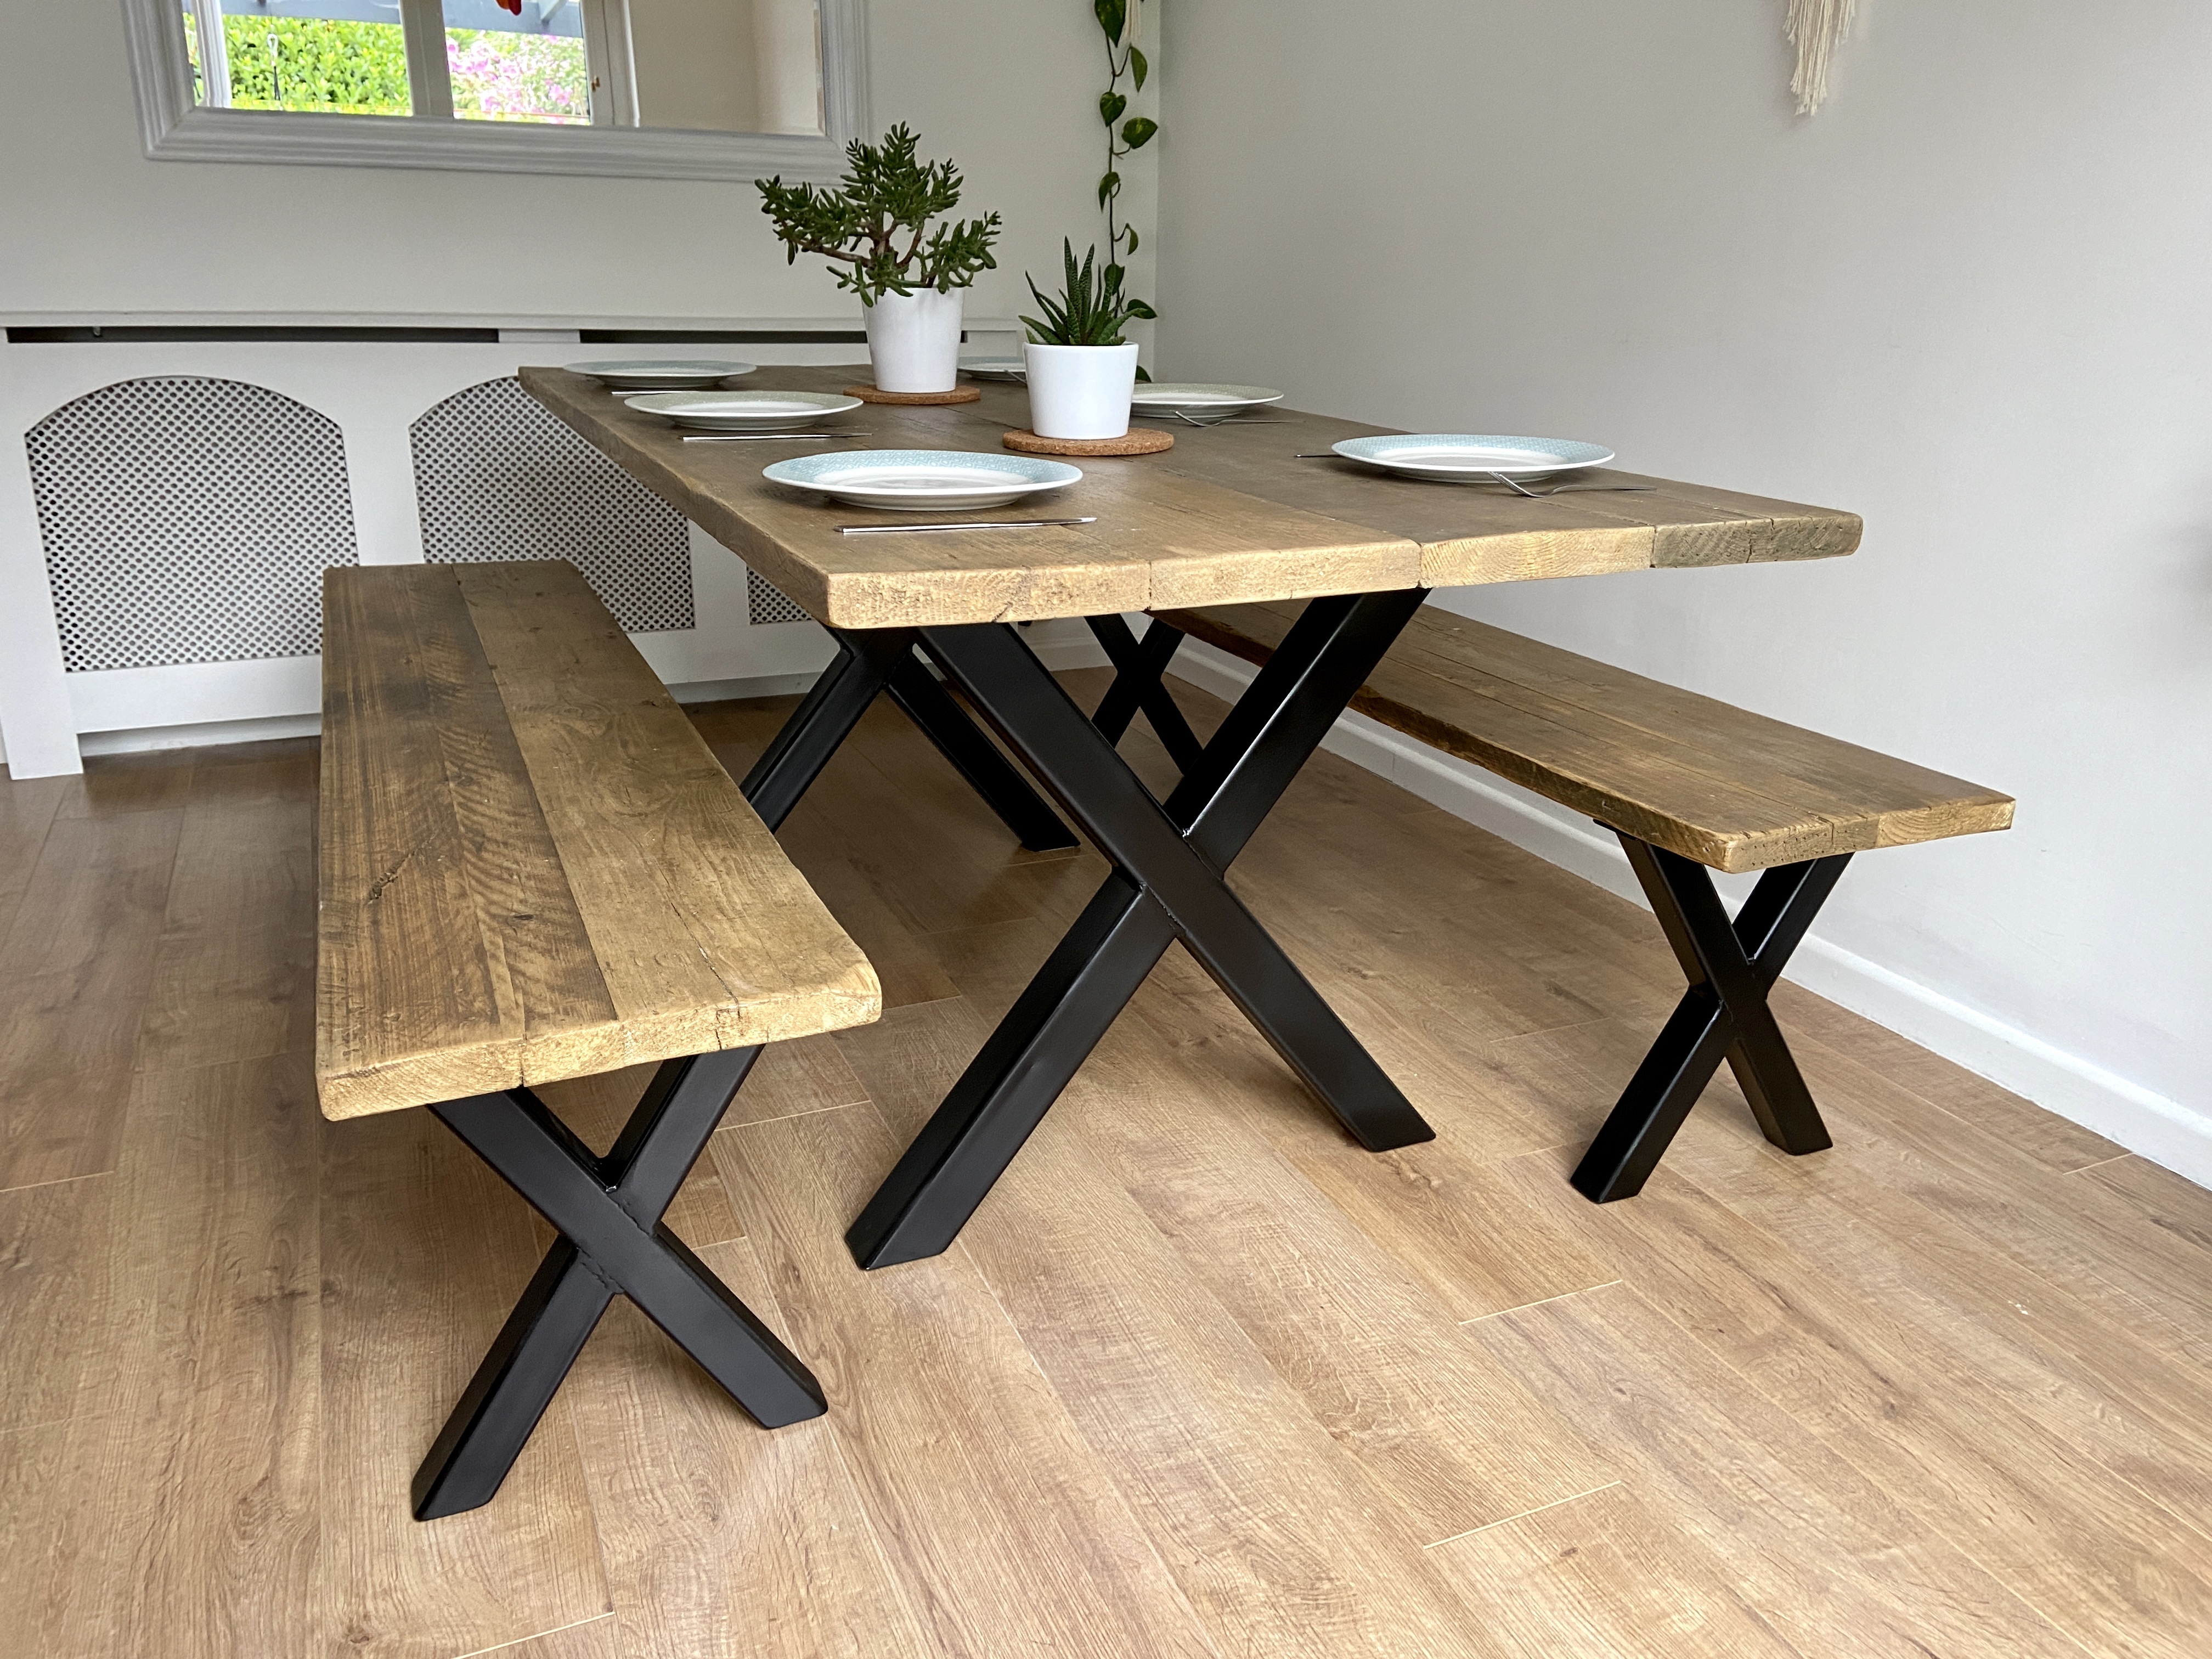 Scaffold Boards Industrial Rustic Hairpin legs Wooden Desk with monitor stand